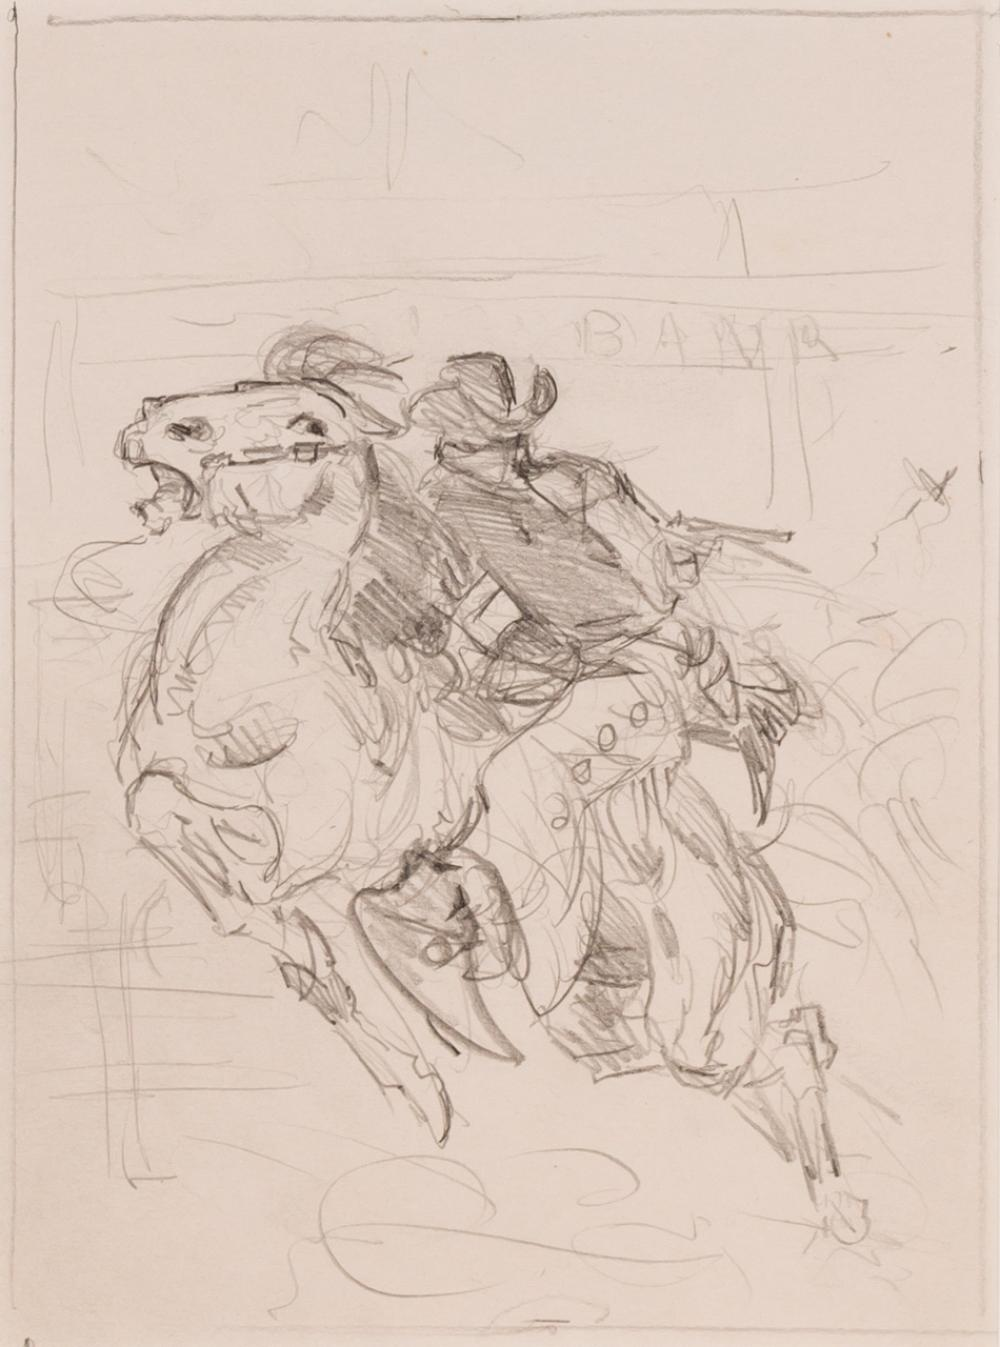 """OLAF WIEGHORST, American (1899-1988), """"Encounter with Grizzly"""" """"The Gallop"""" """"Roping a Steer"""" """"Wild Horses in a Corral"""" """"On the Trail..."""